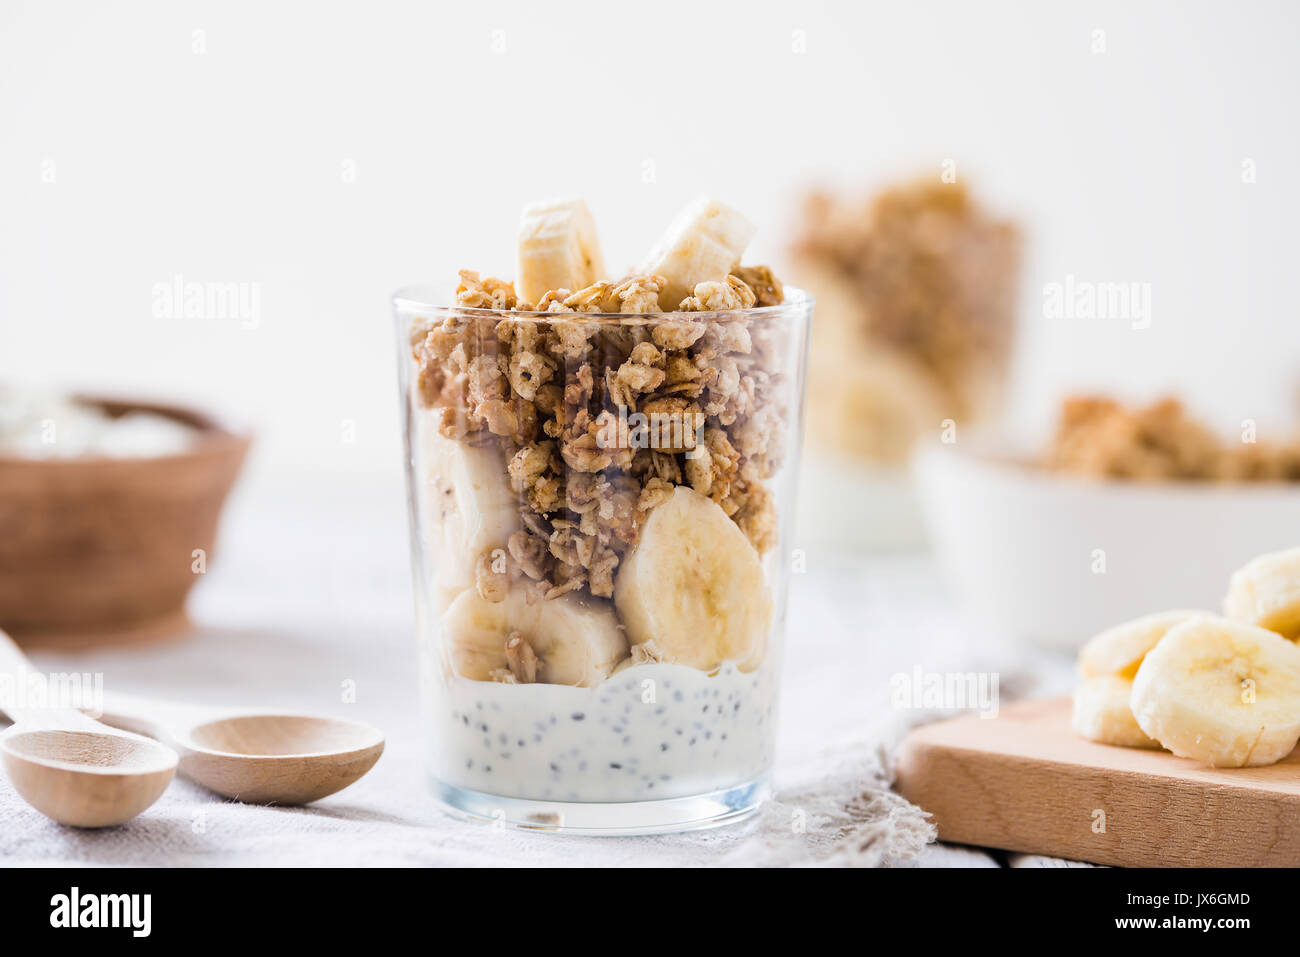 Chia pudding parfait, layered yogurt with banana, granola. Healthy breakfast concept on white wooden table - Stock Image